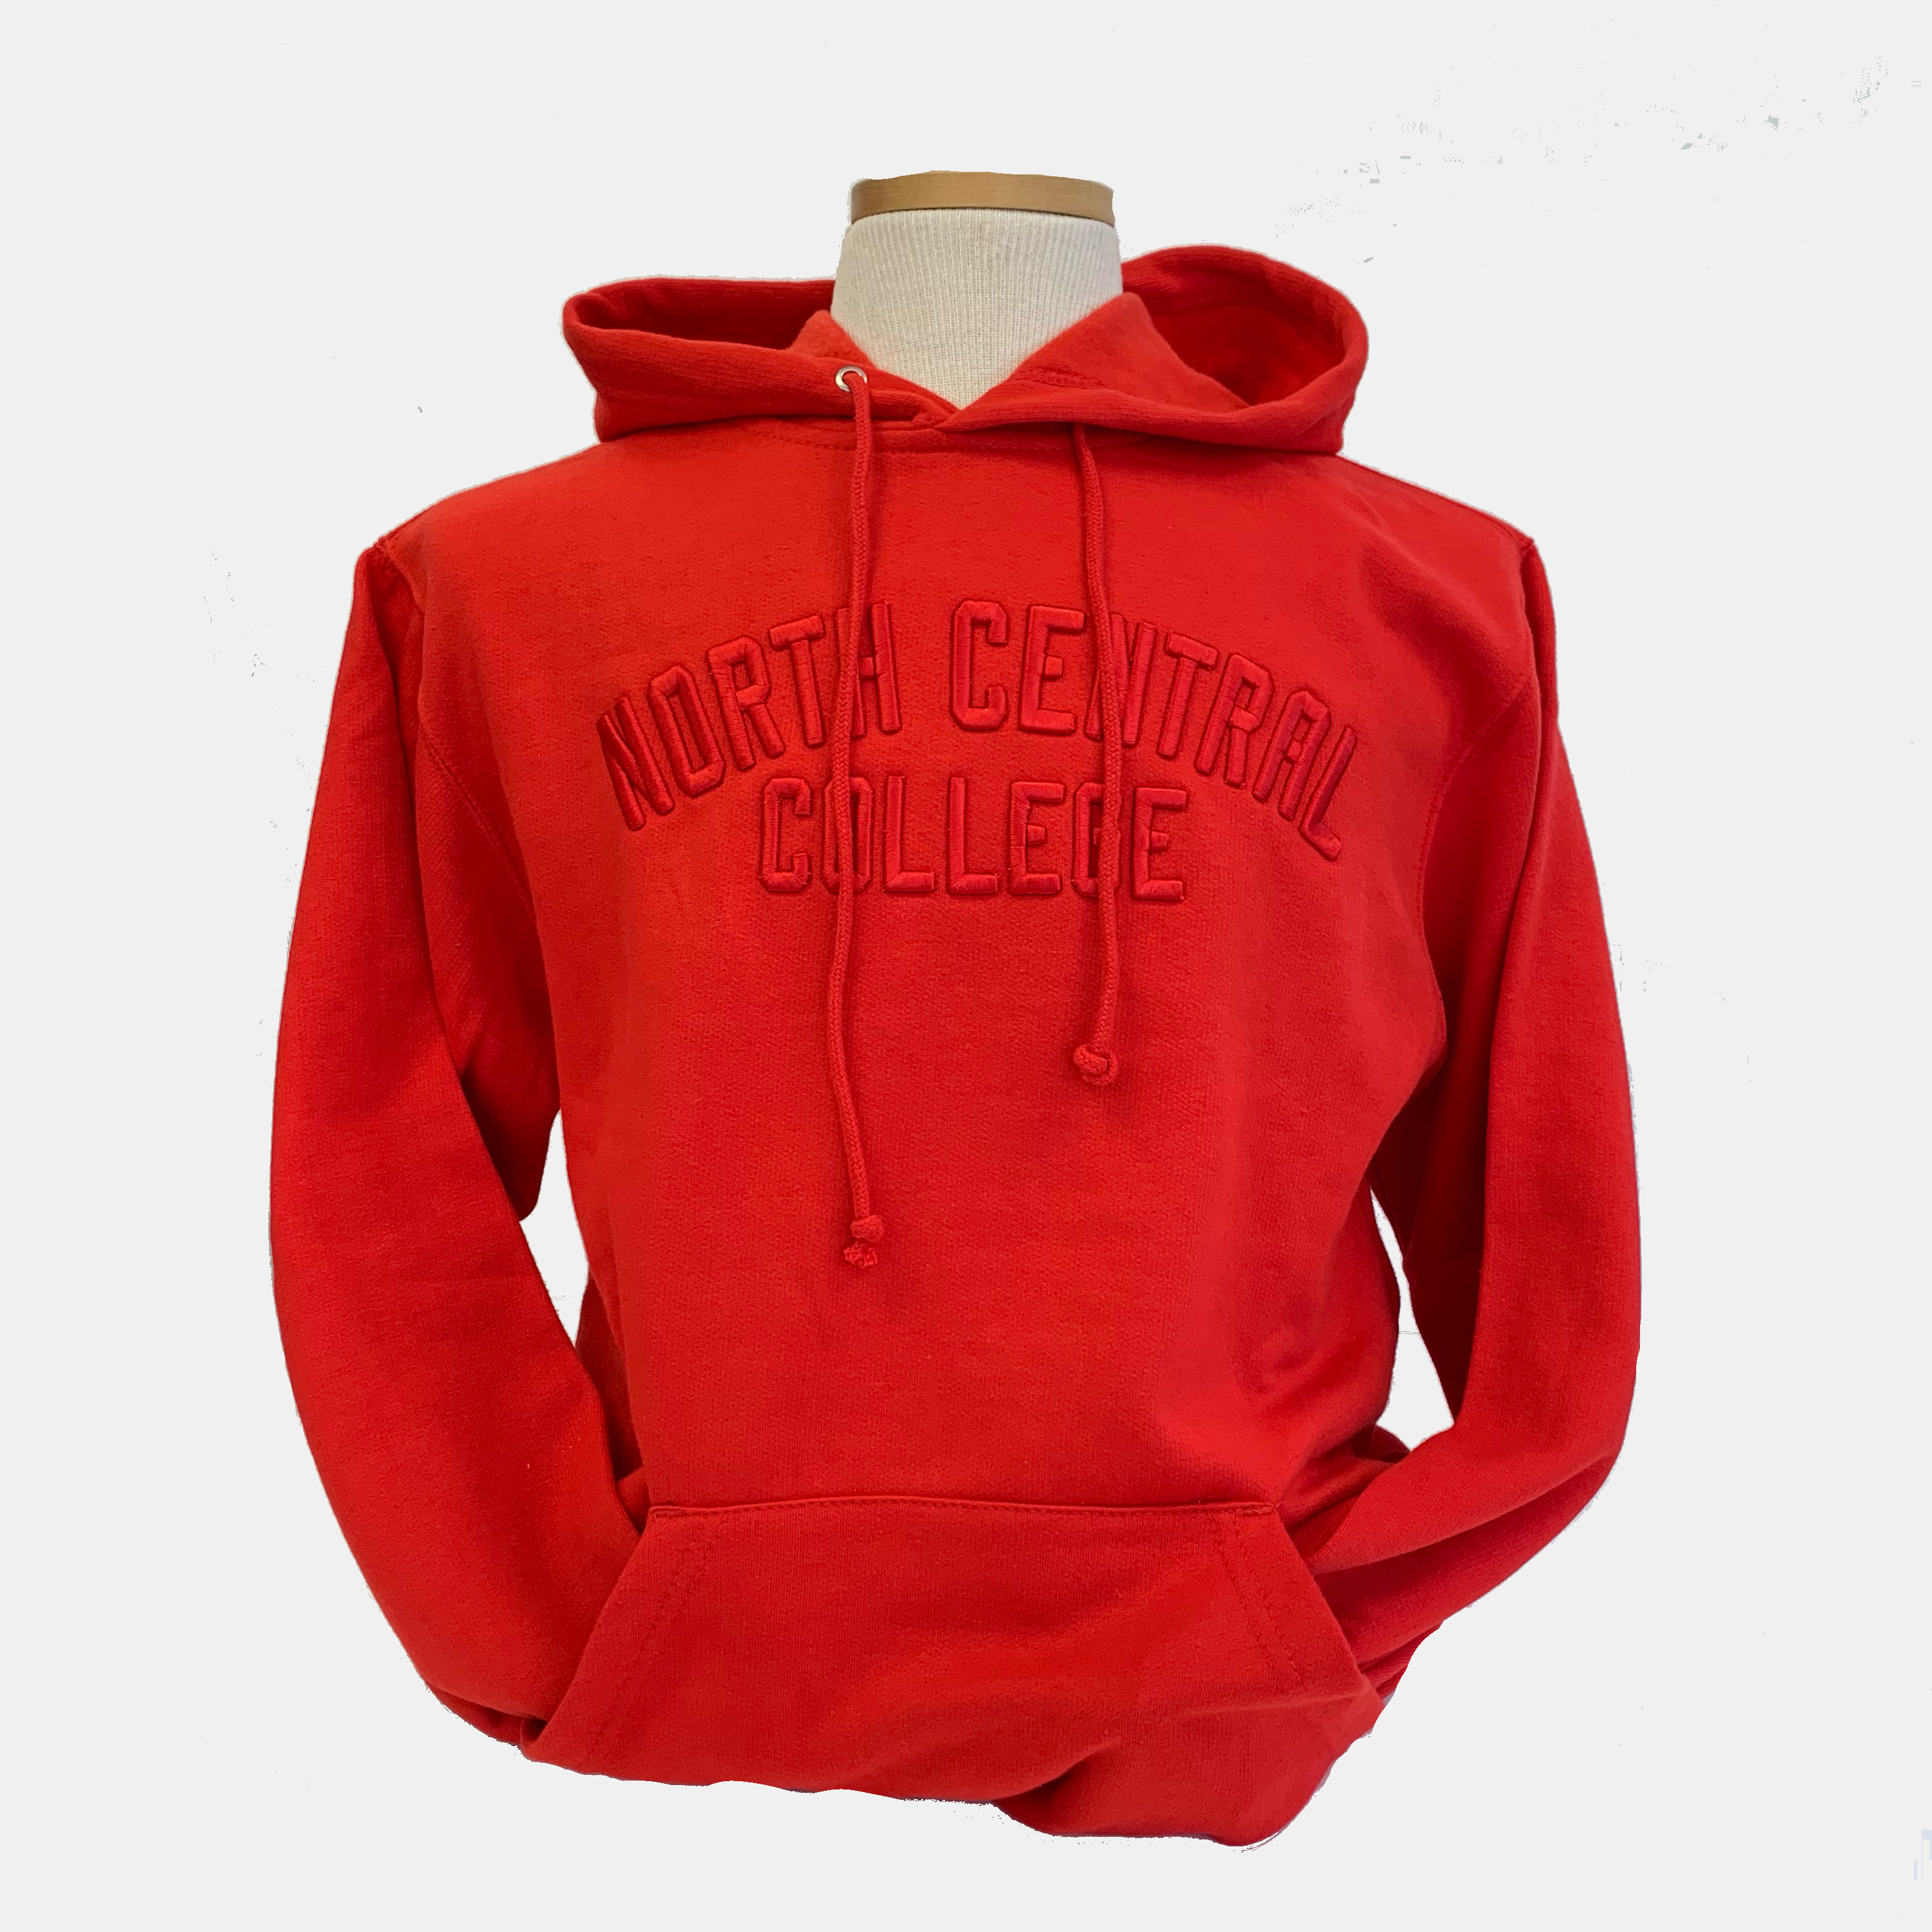 Image for the Comfort Fleece Hoodie by MV Sport product